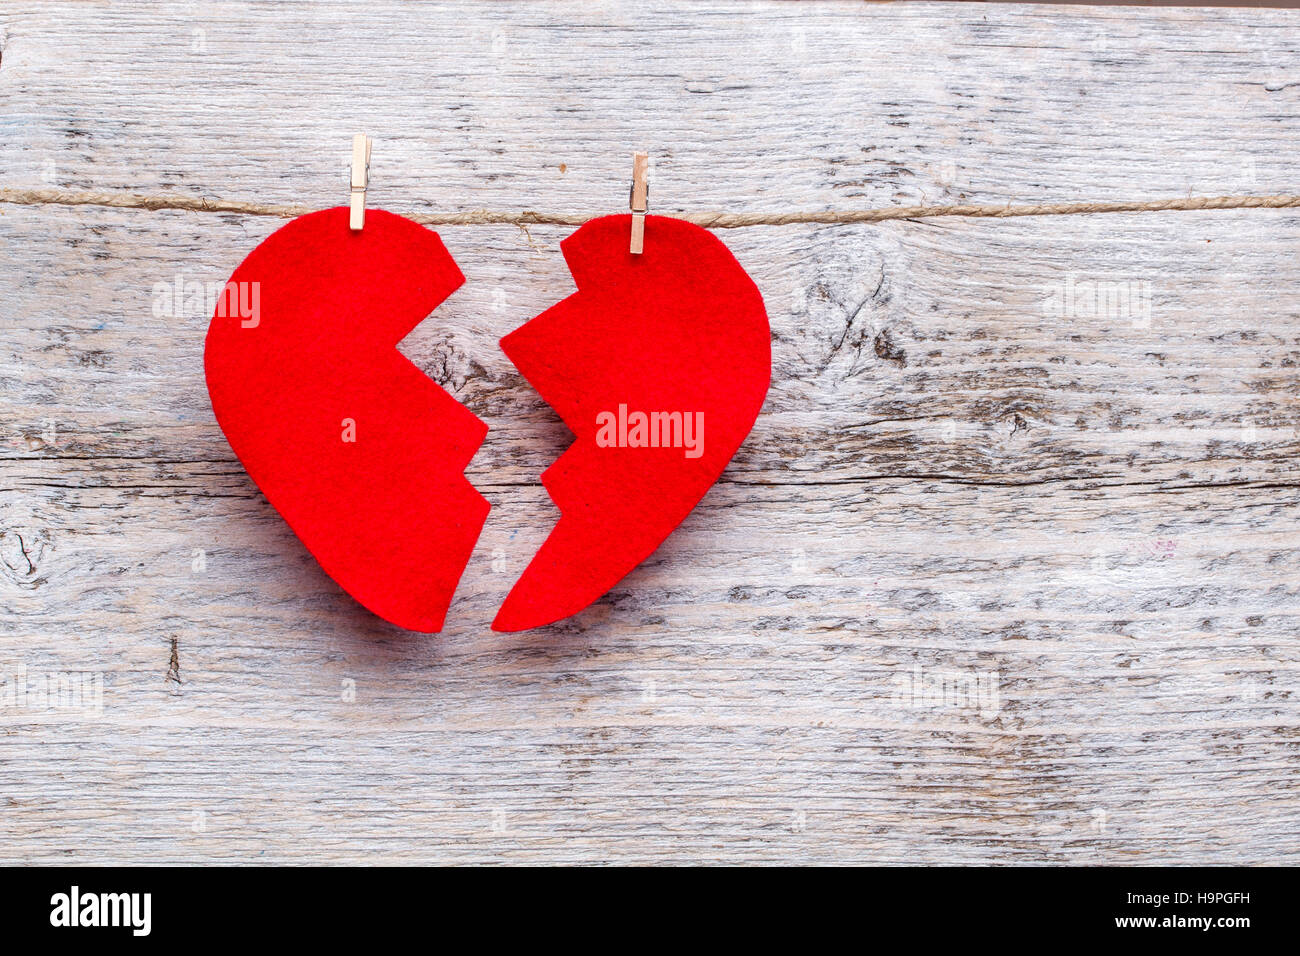 Broken heart - Stock Image